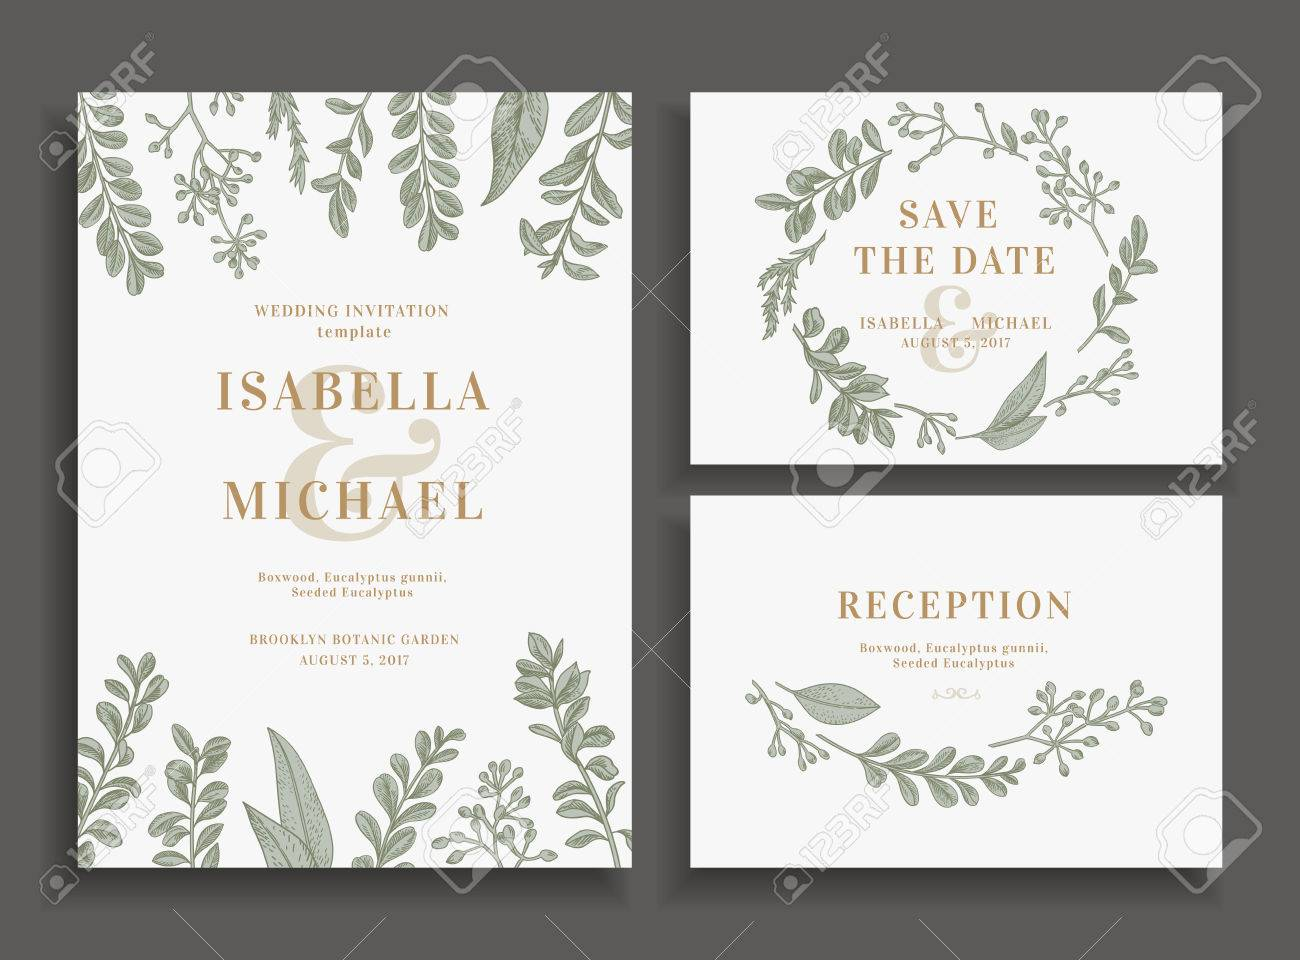 Vintage wedding set with greenery. Wedding invitation, save the date, reception card. - 63418912